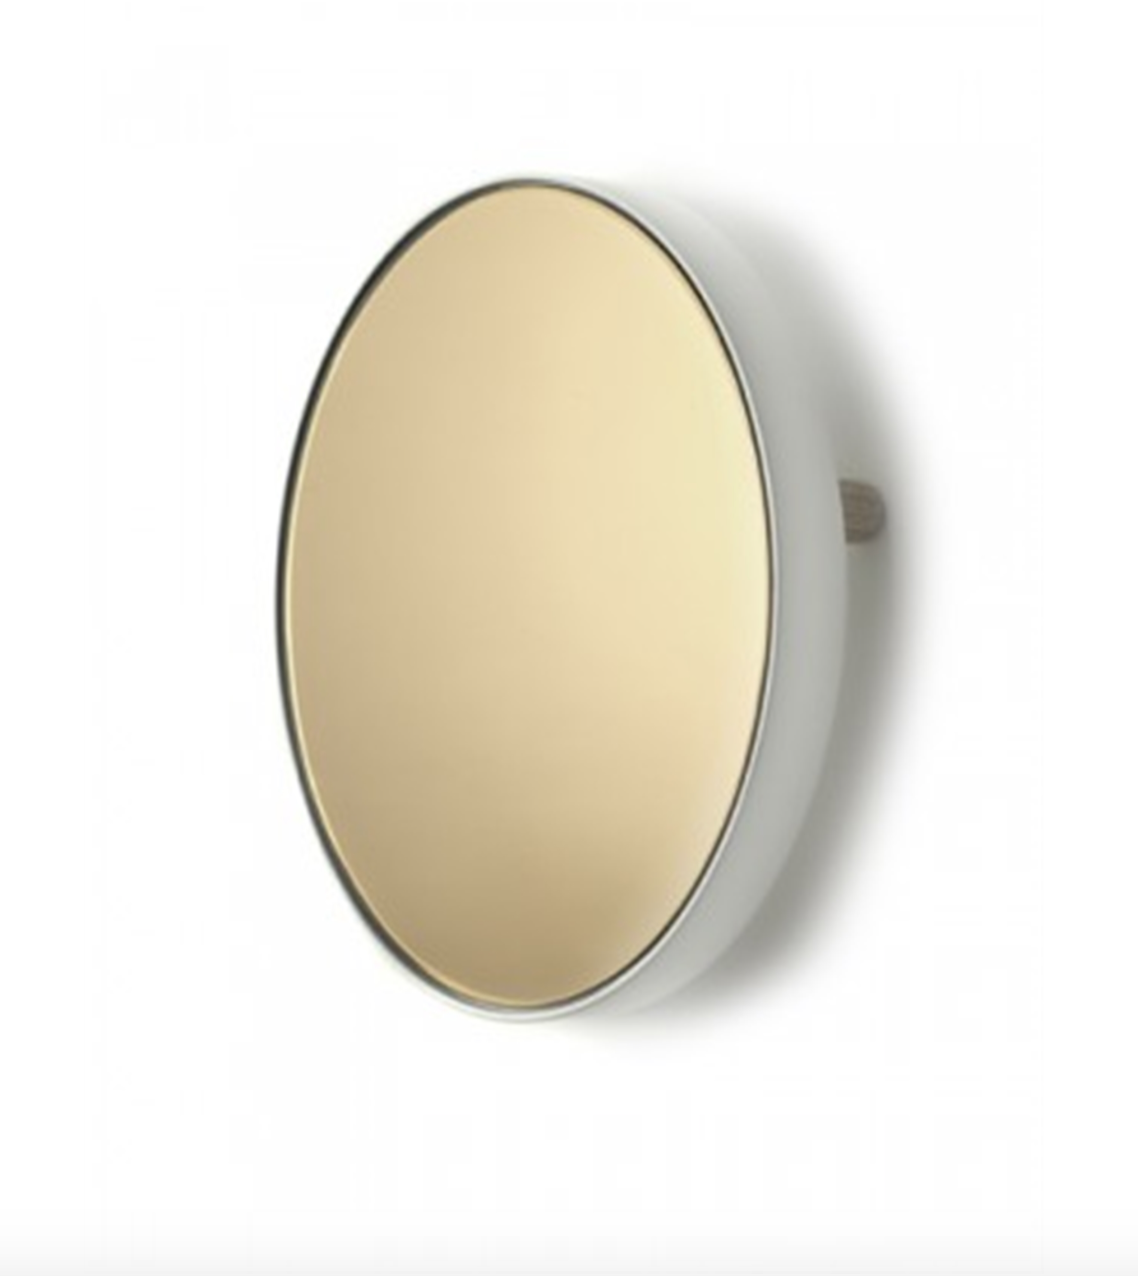 "BIDKHOME Mirror Tray Round Studio Simple 31x6"" White"